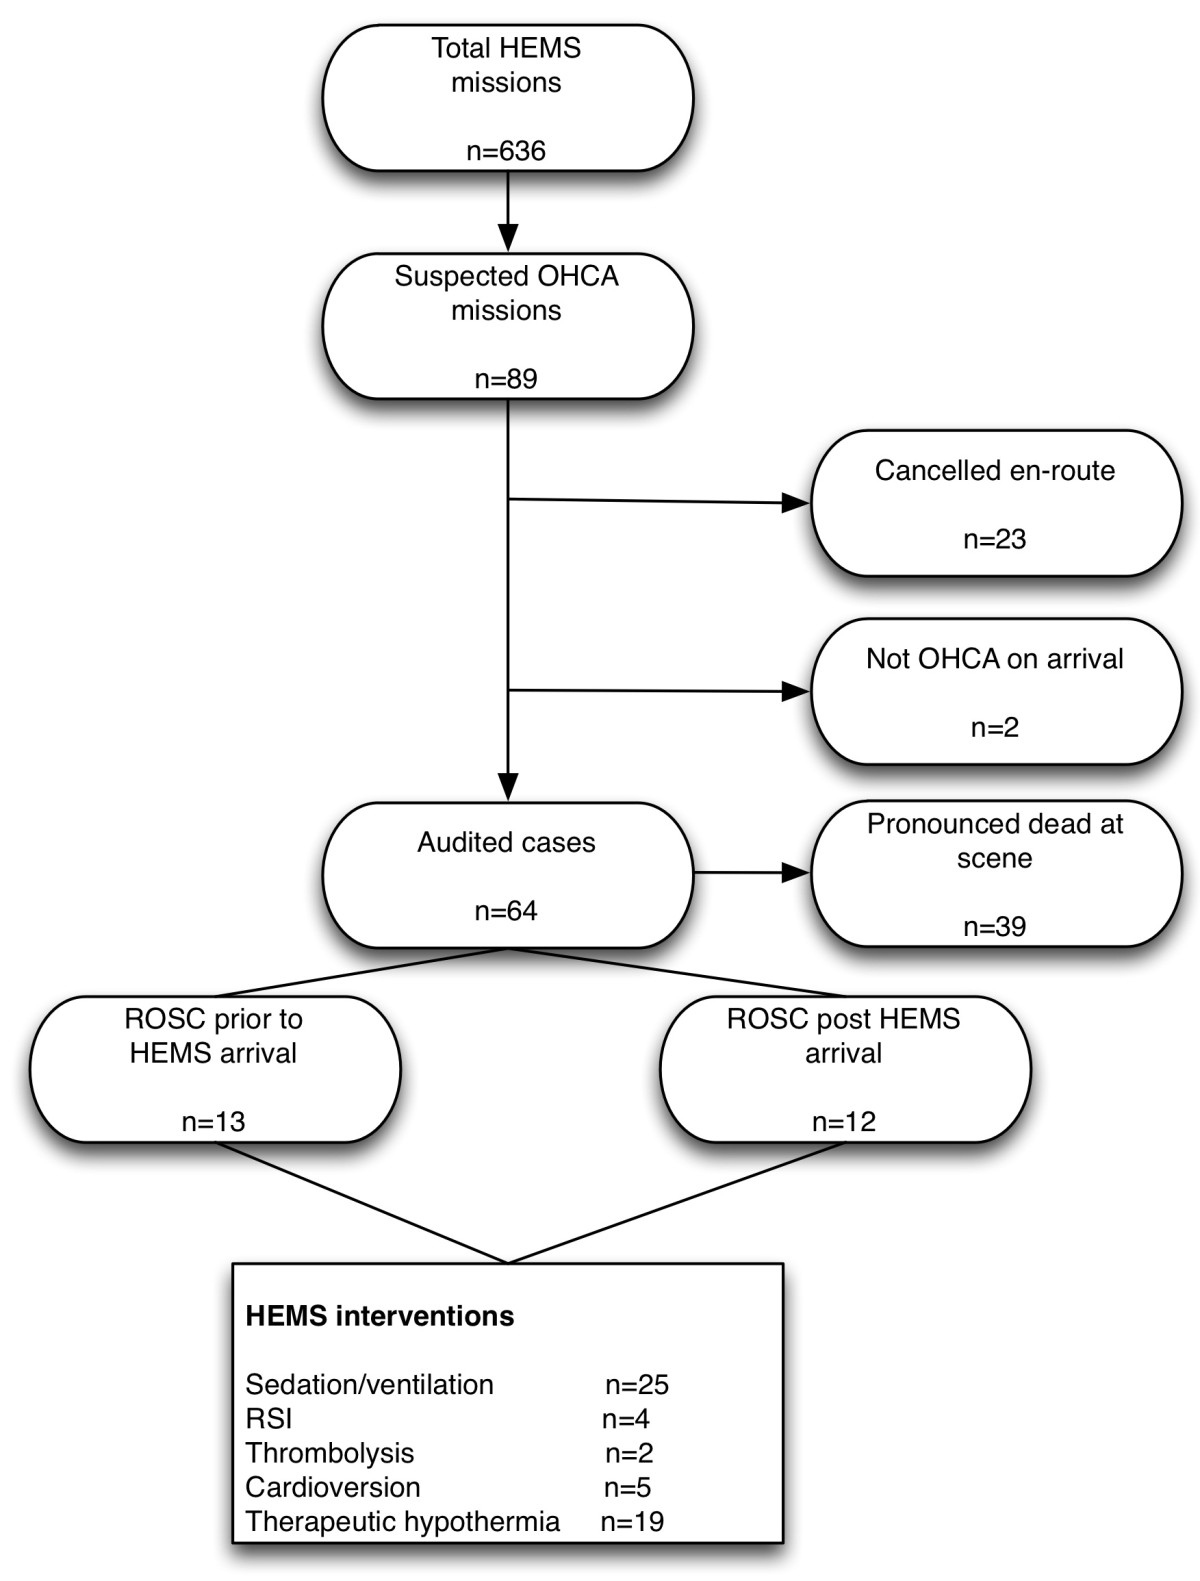 http://static-content.springer.com/image/art%3A10.1186%2F1757-7241-21-1/MediaObjects/13049_2012_Article_541_Fig1_HTML.jpg